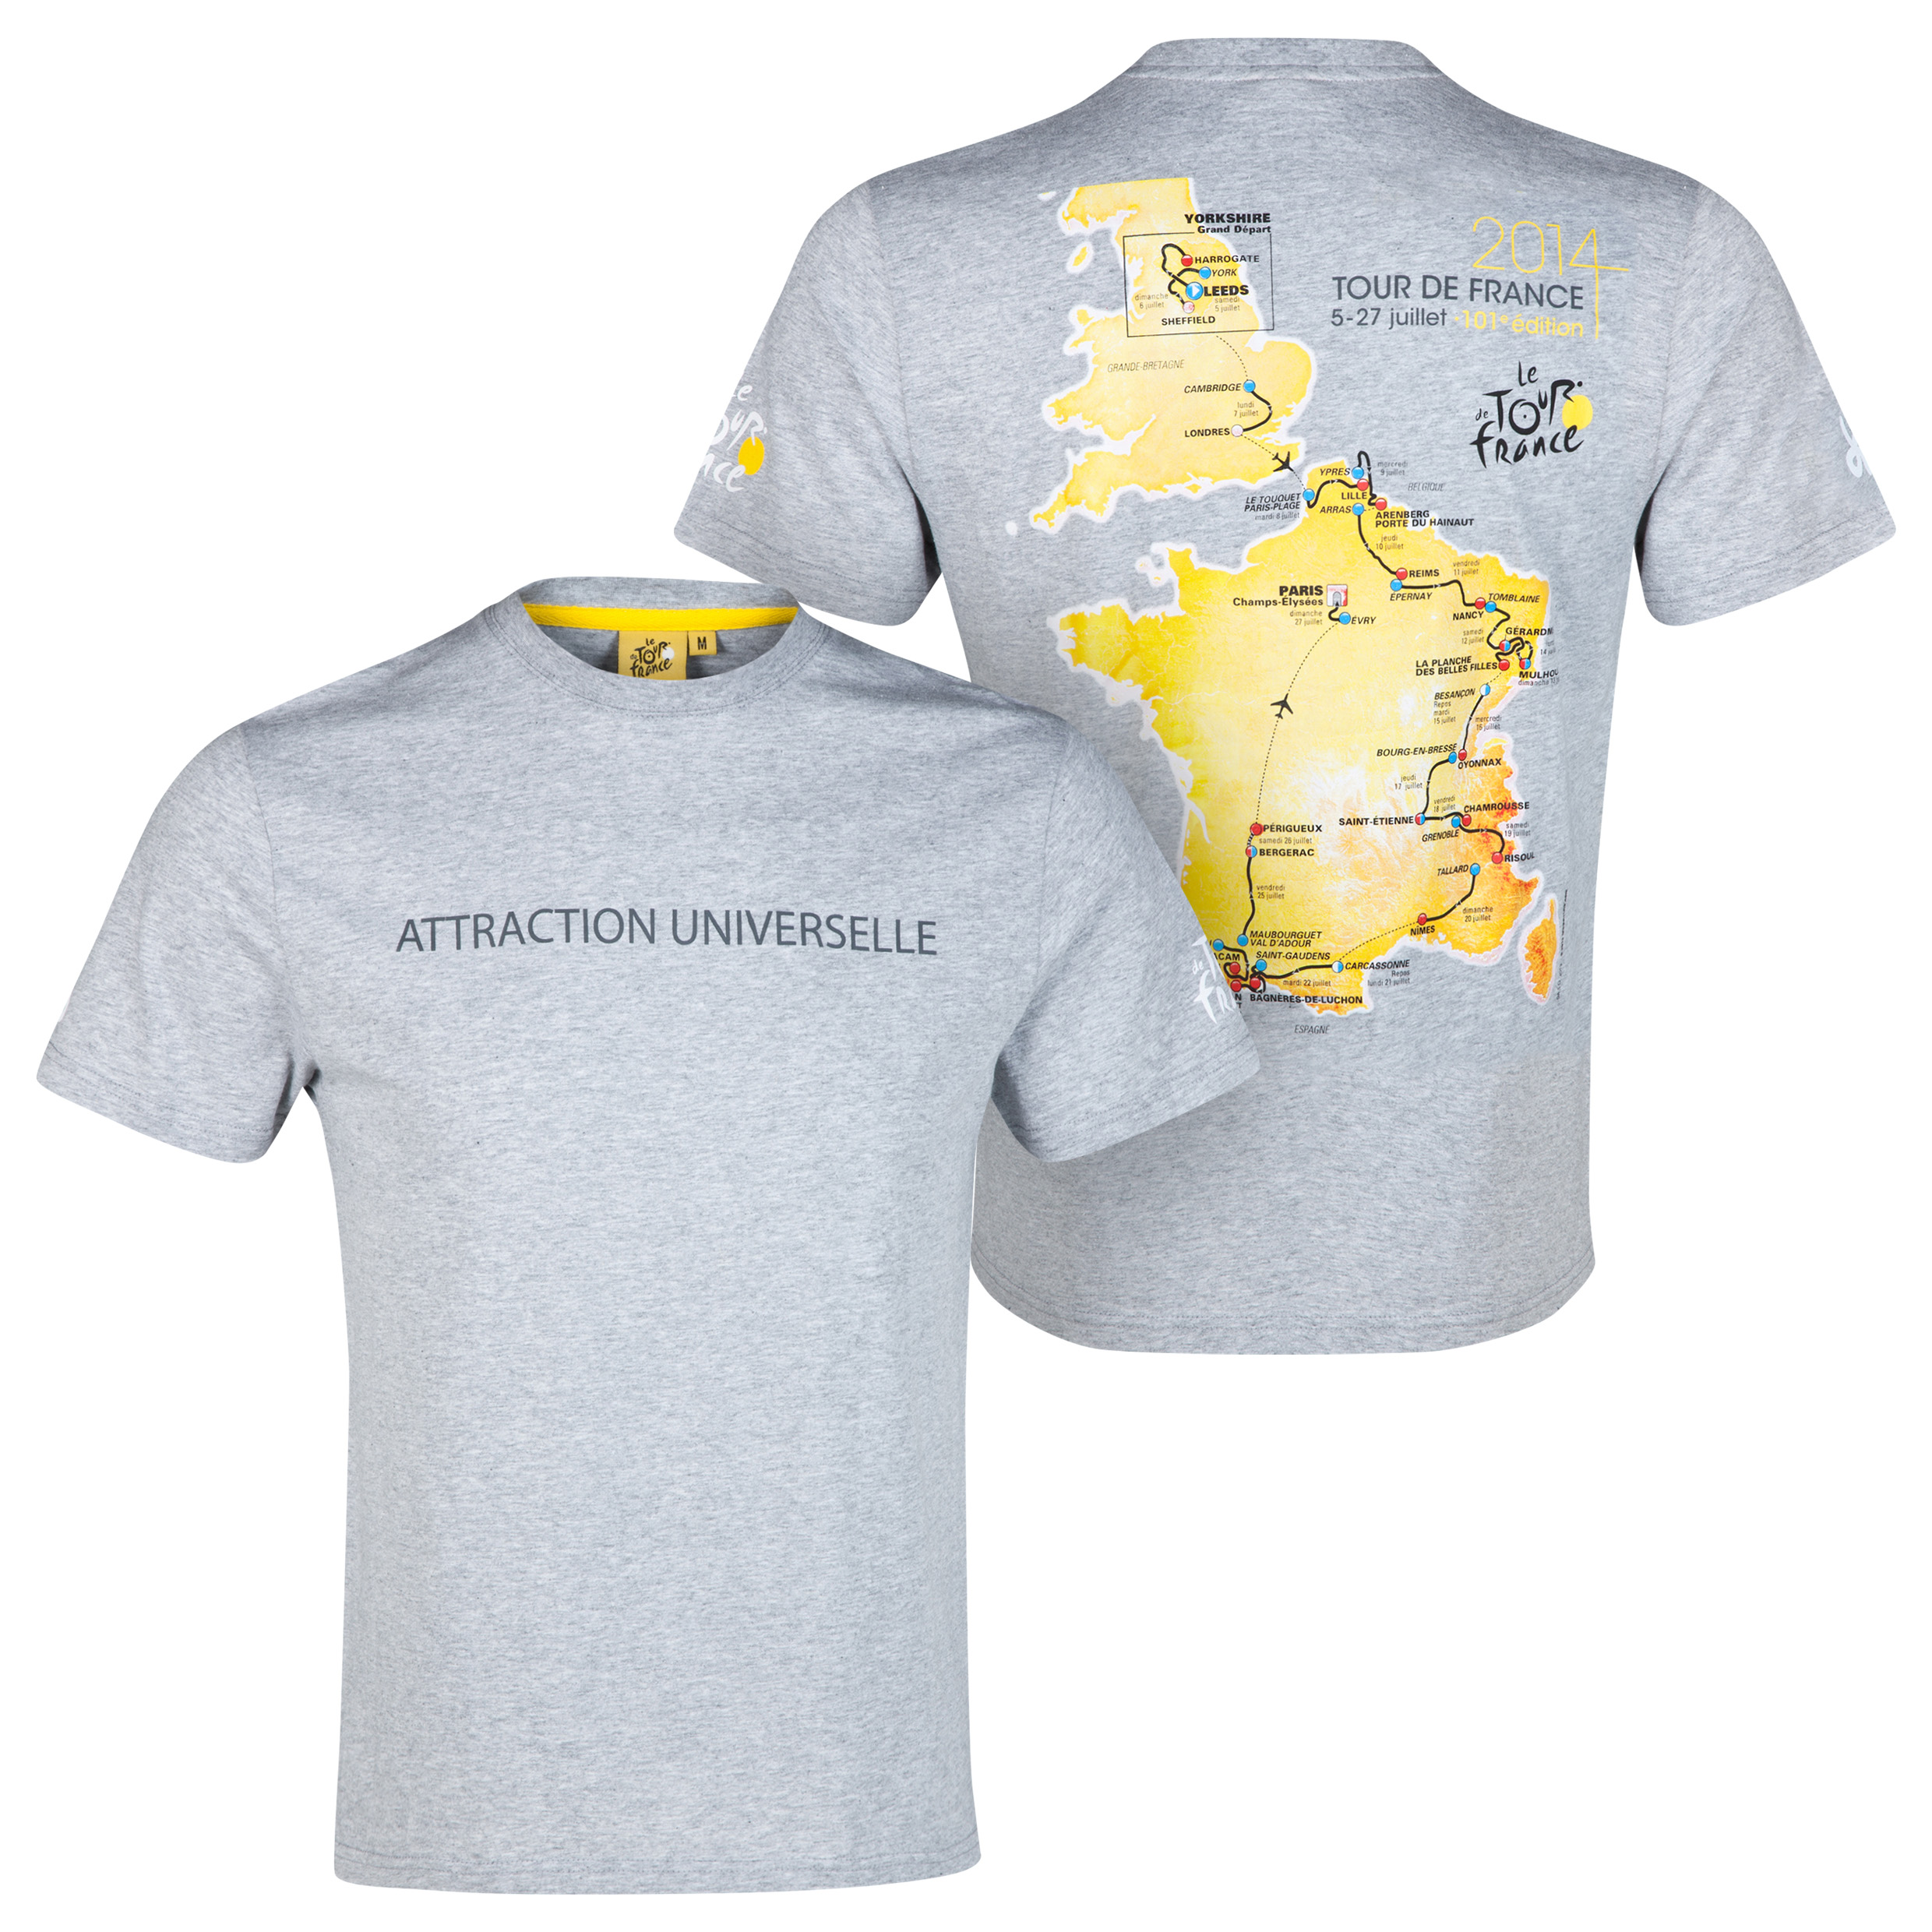 Le Tour de France Race T-Shirt